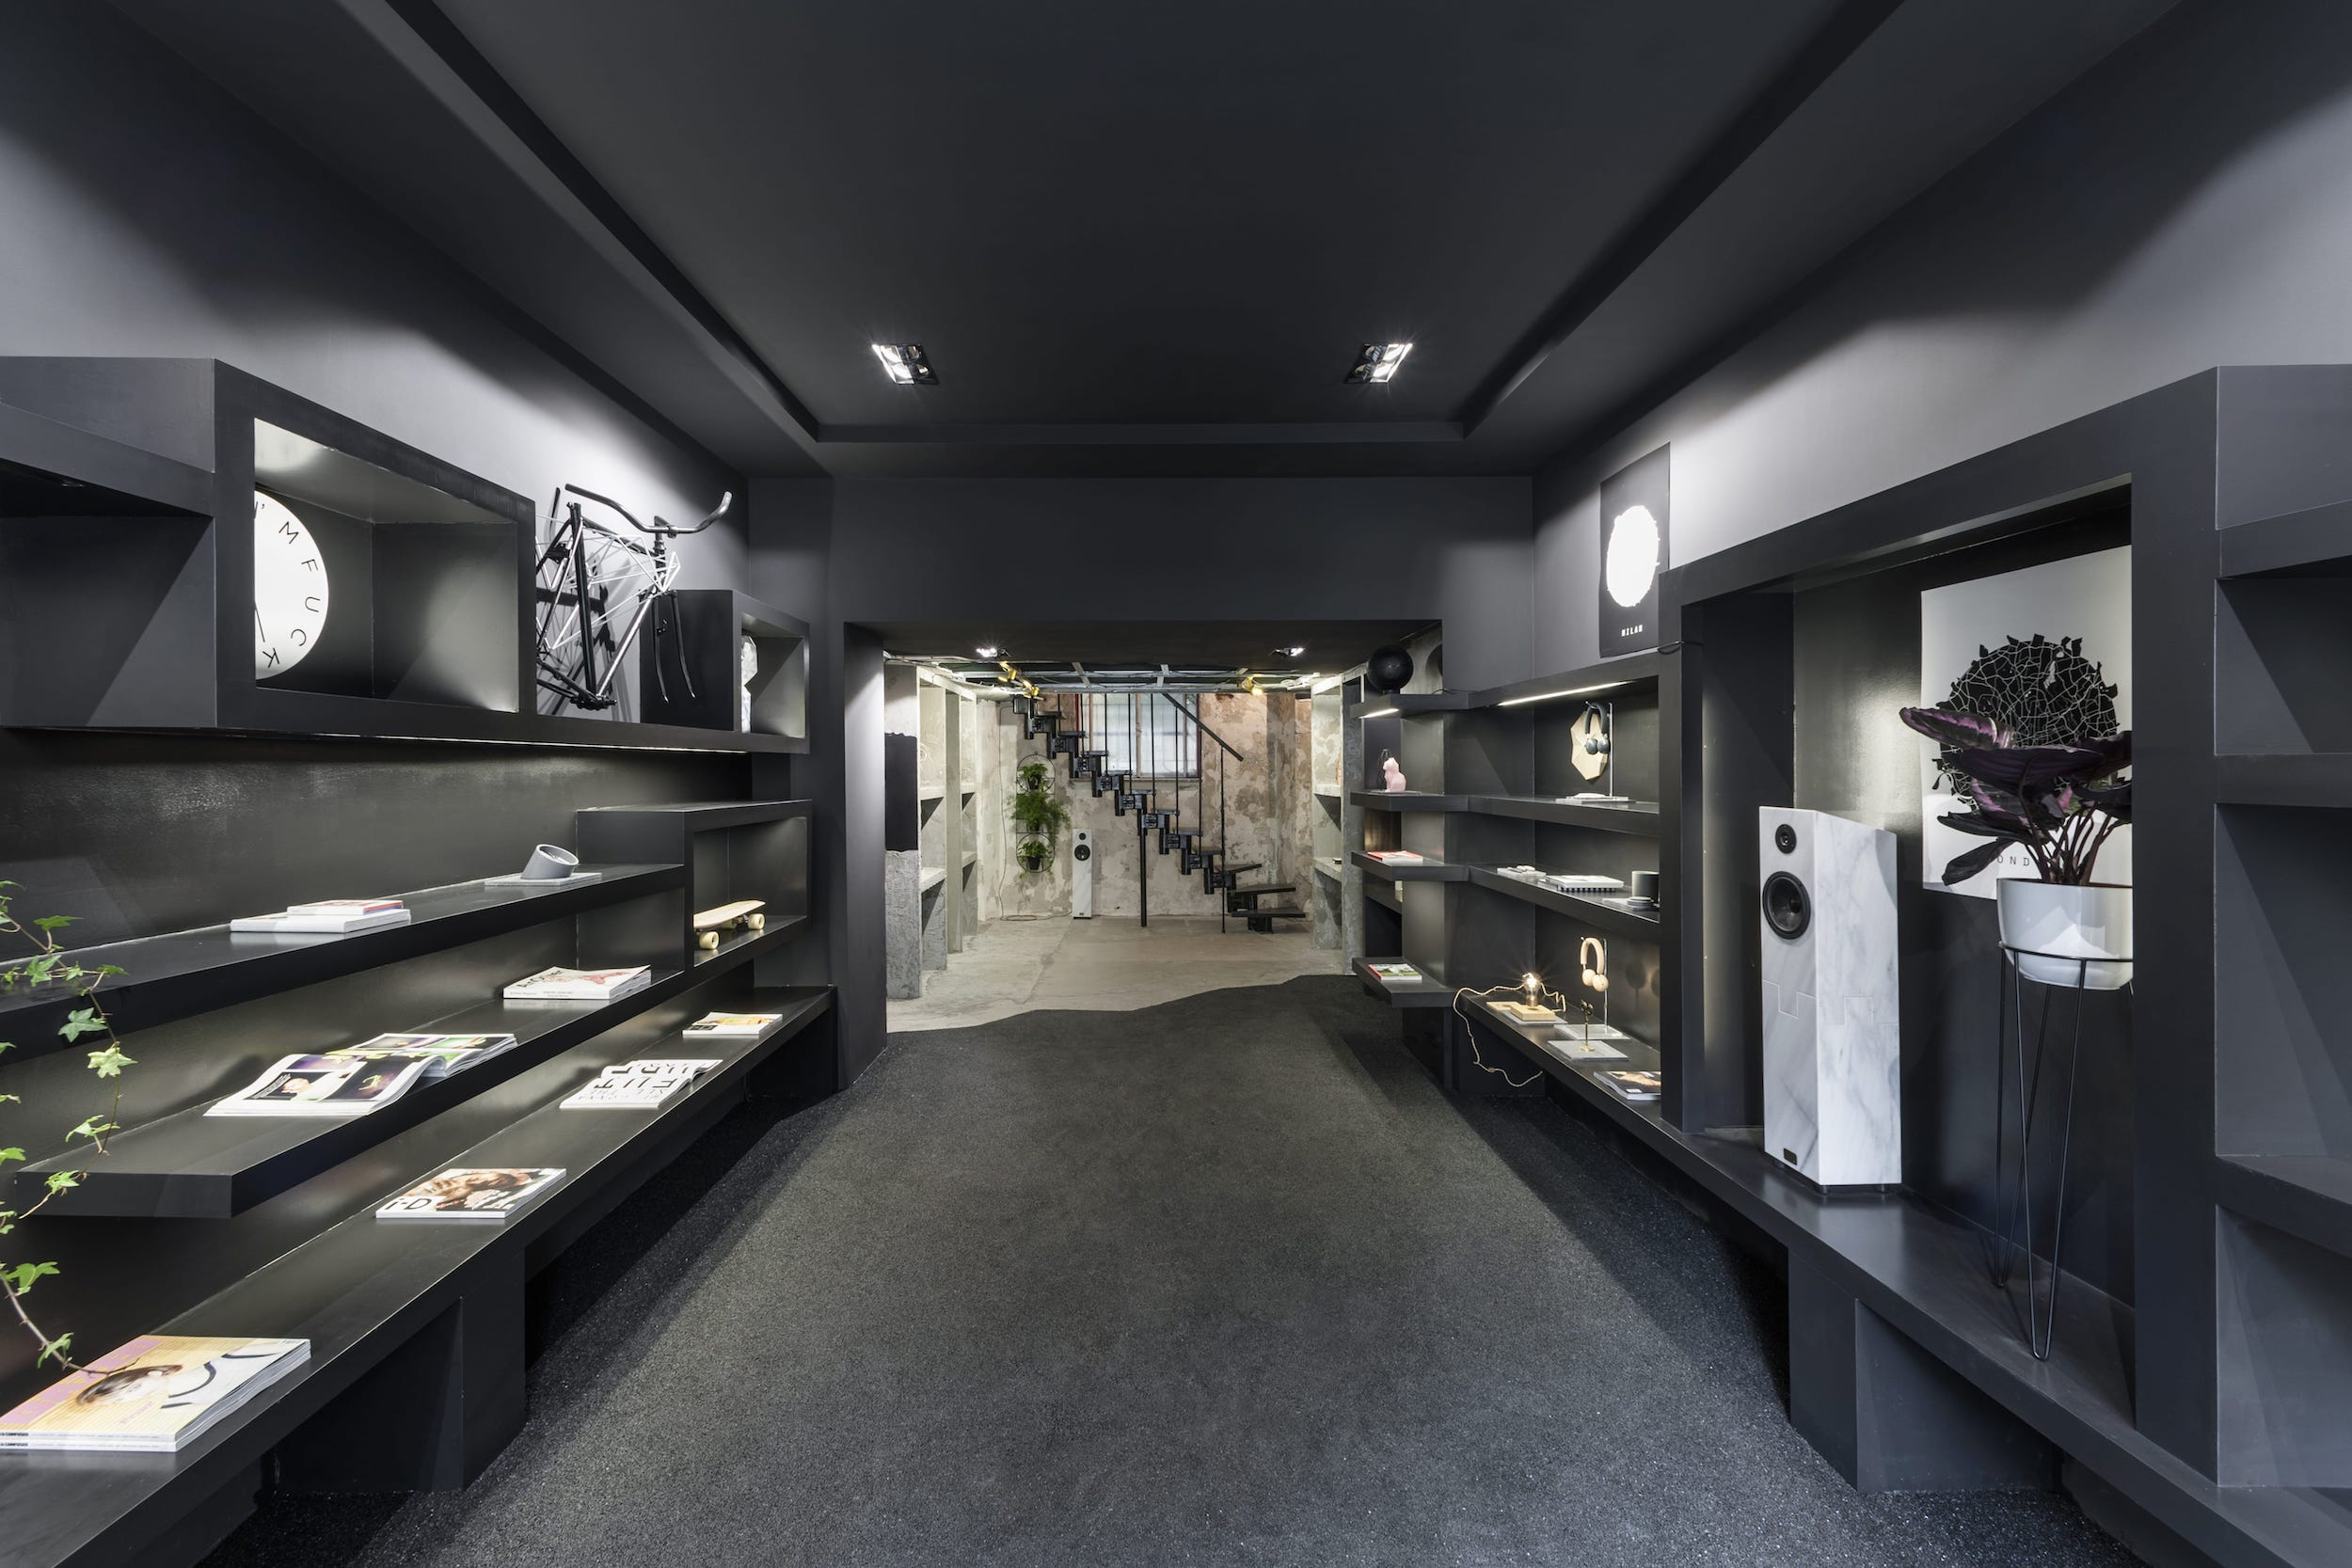 Interior architecture studio for retail, Milan